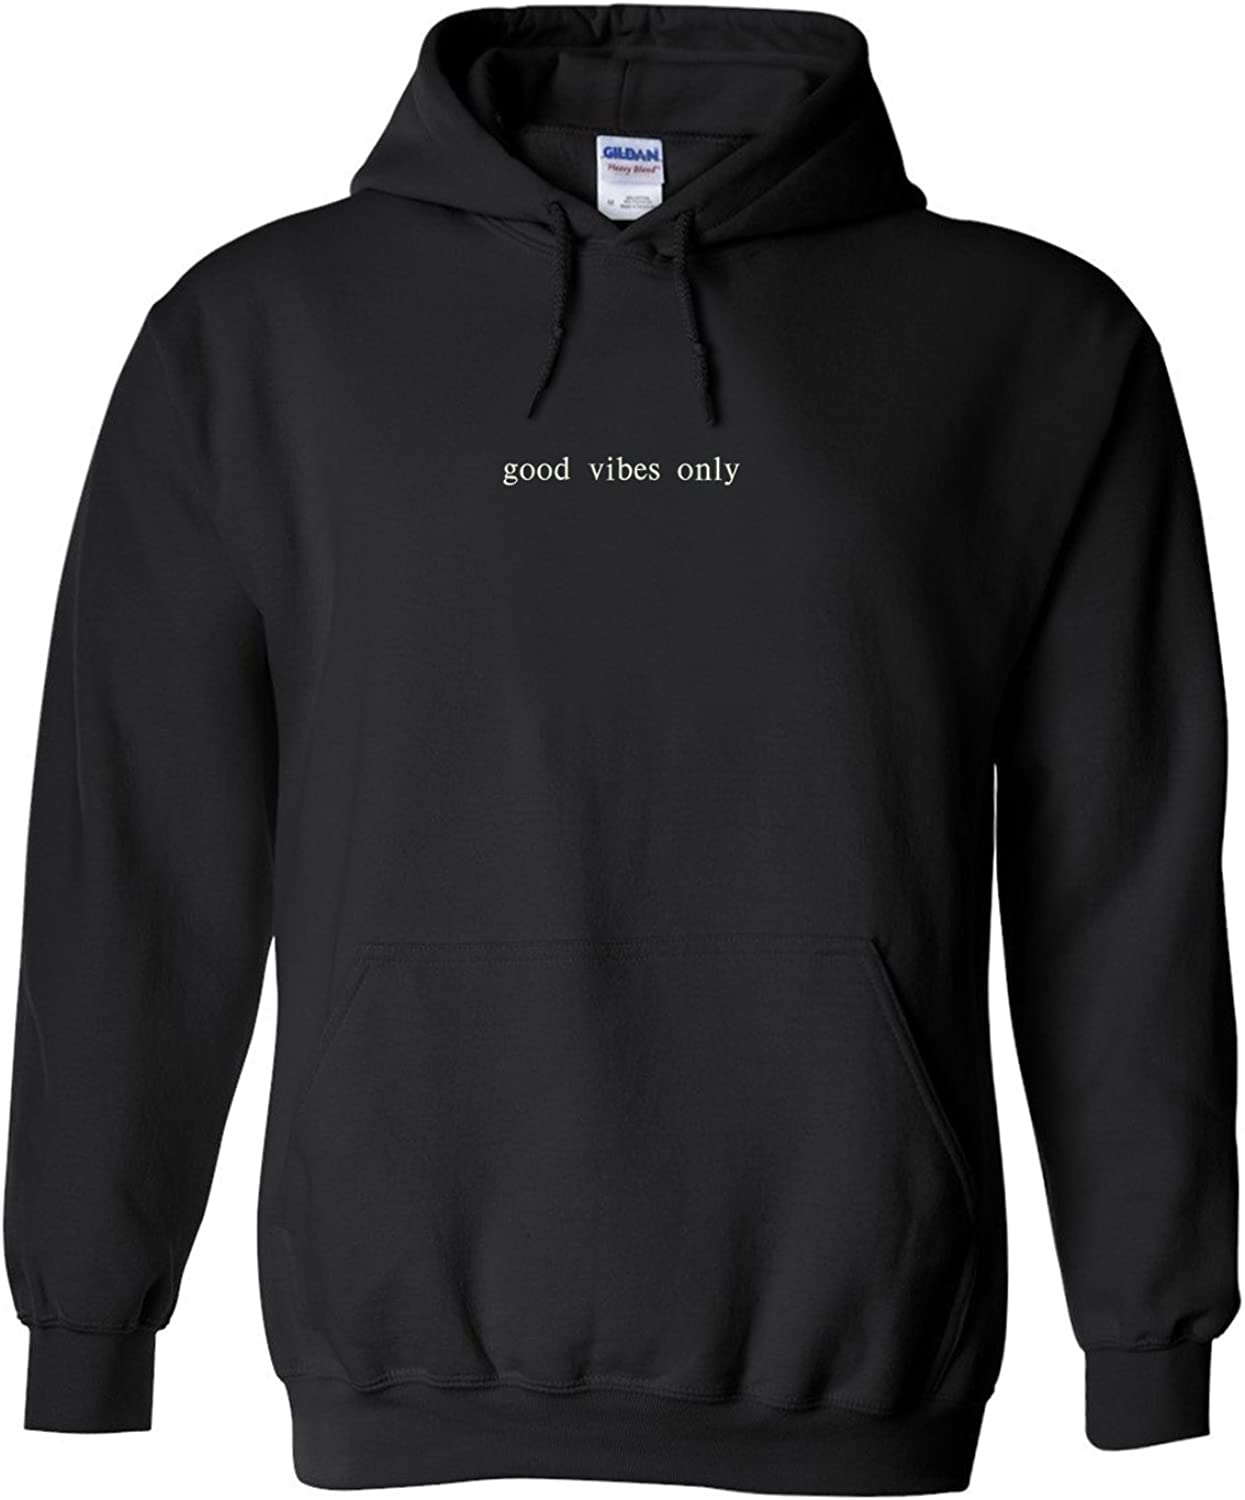 Trendy Apparel Shop Good Vibes Only Embroidered Heavy Blend Hoodie